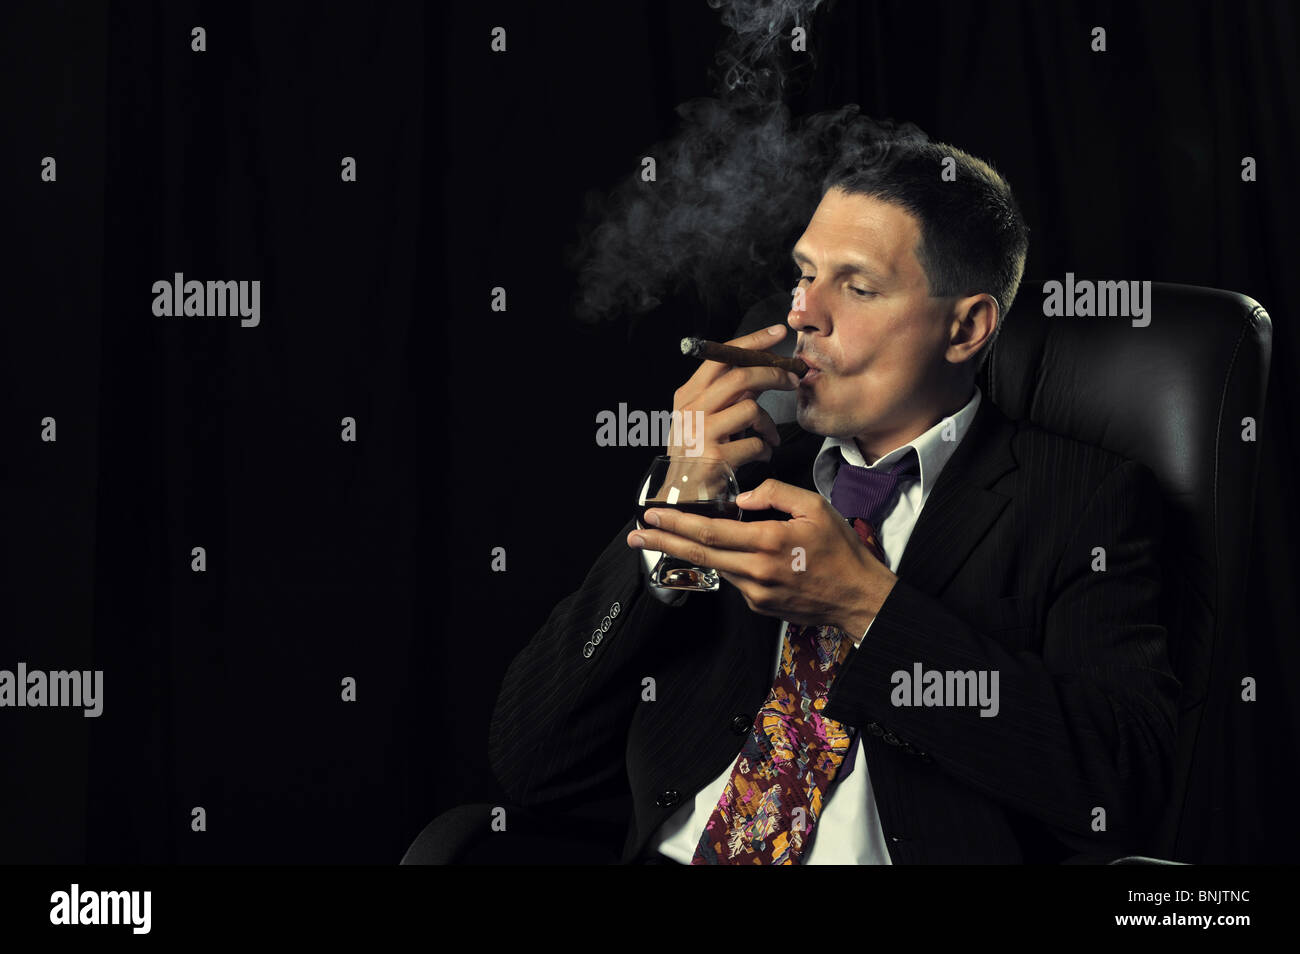 The man with a cigar and a glass of cognac. A dark background - Stock Image